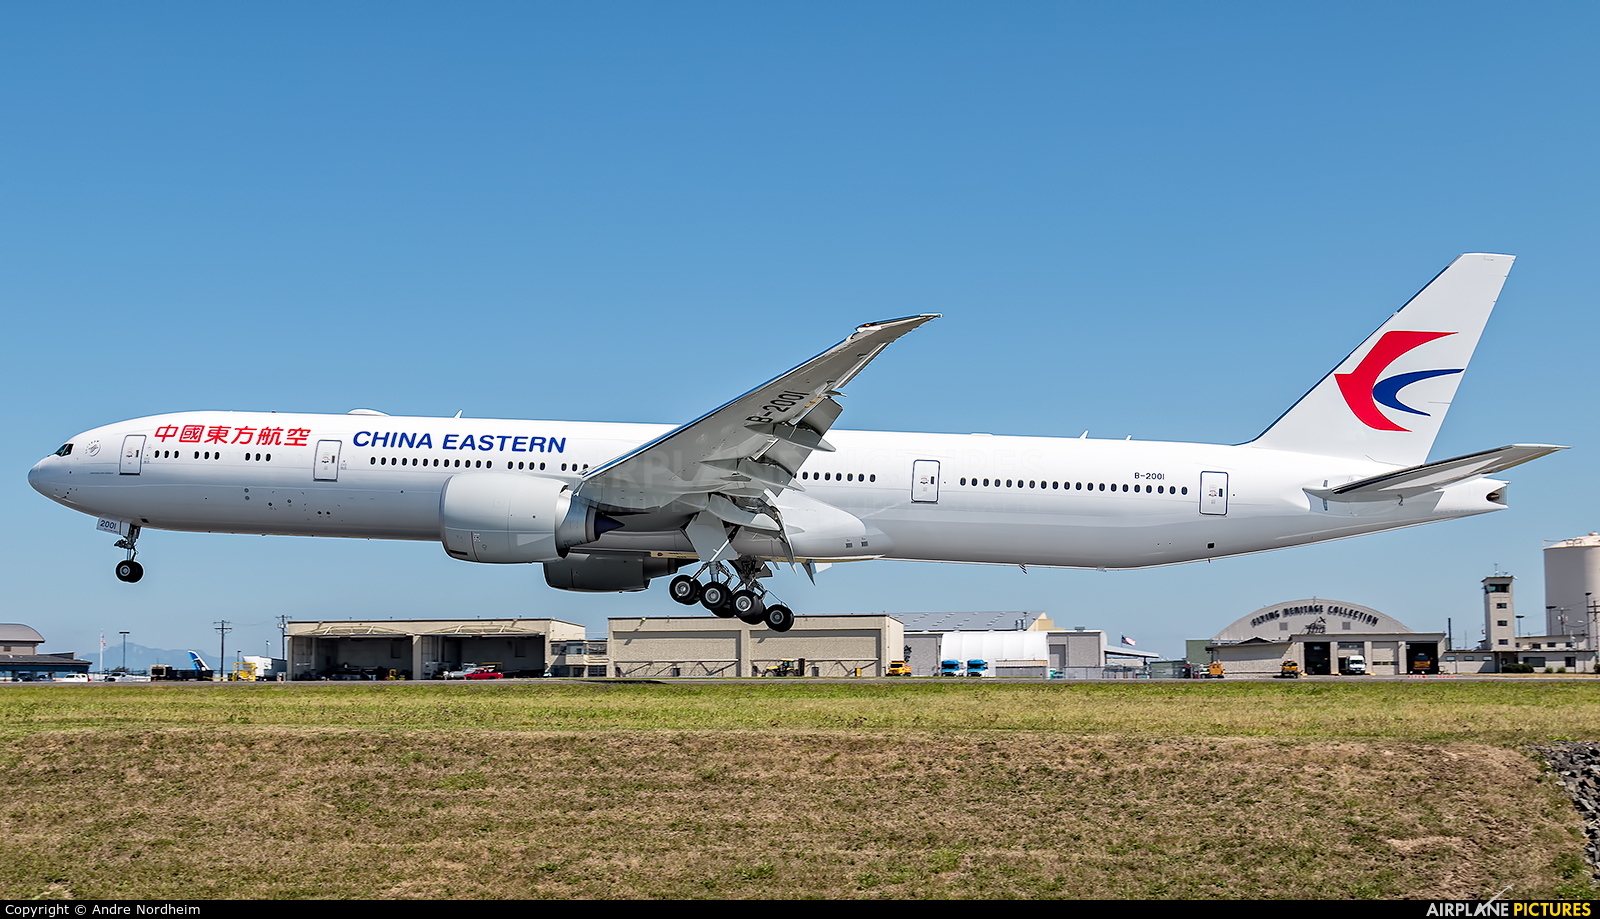 B 2001 china eastern airlines boeing 777 300er at - China eastern airlines sydney office ...